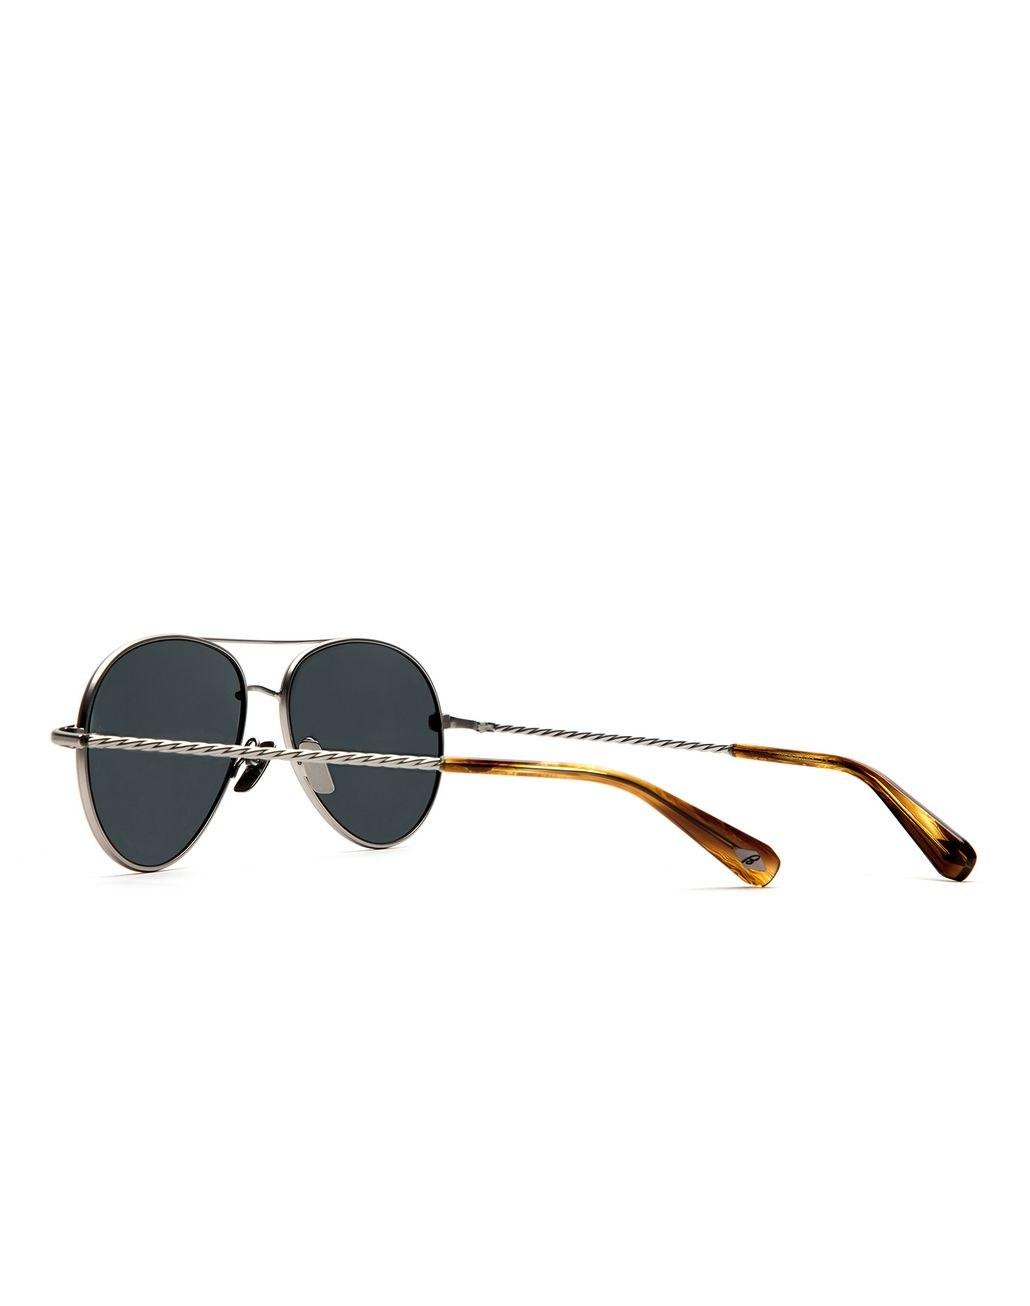 BRIONI Silver Aviator Sunglasses with Grey Lenses Sunglasses Man d